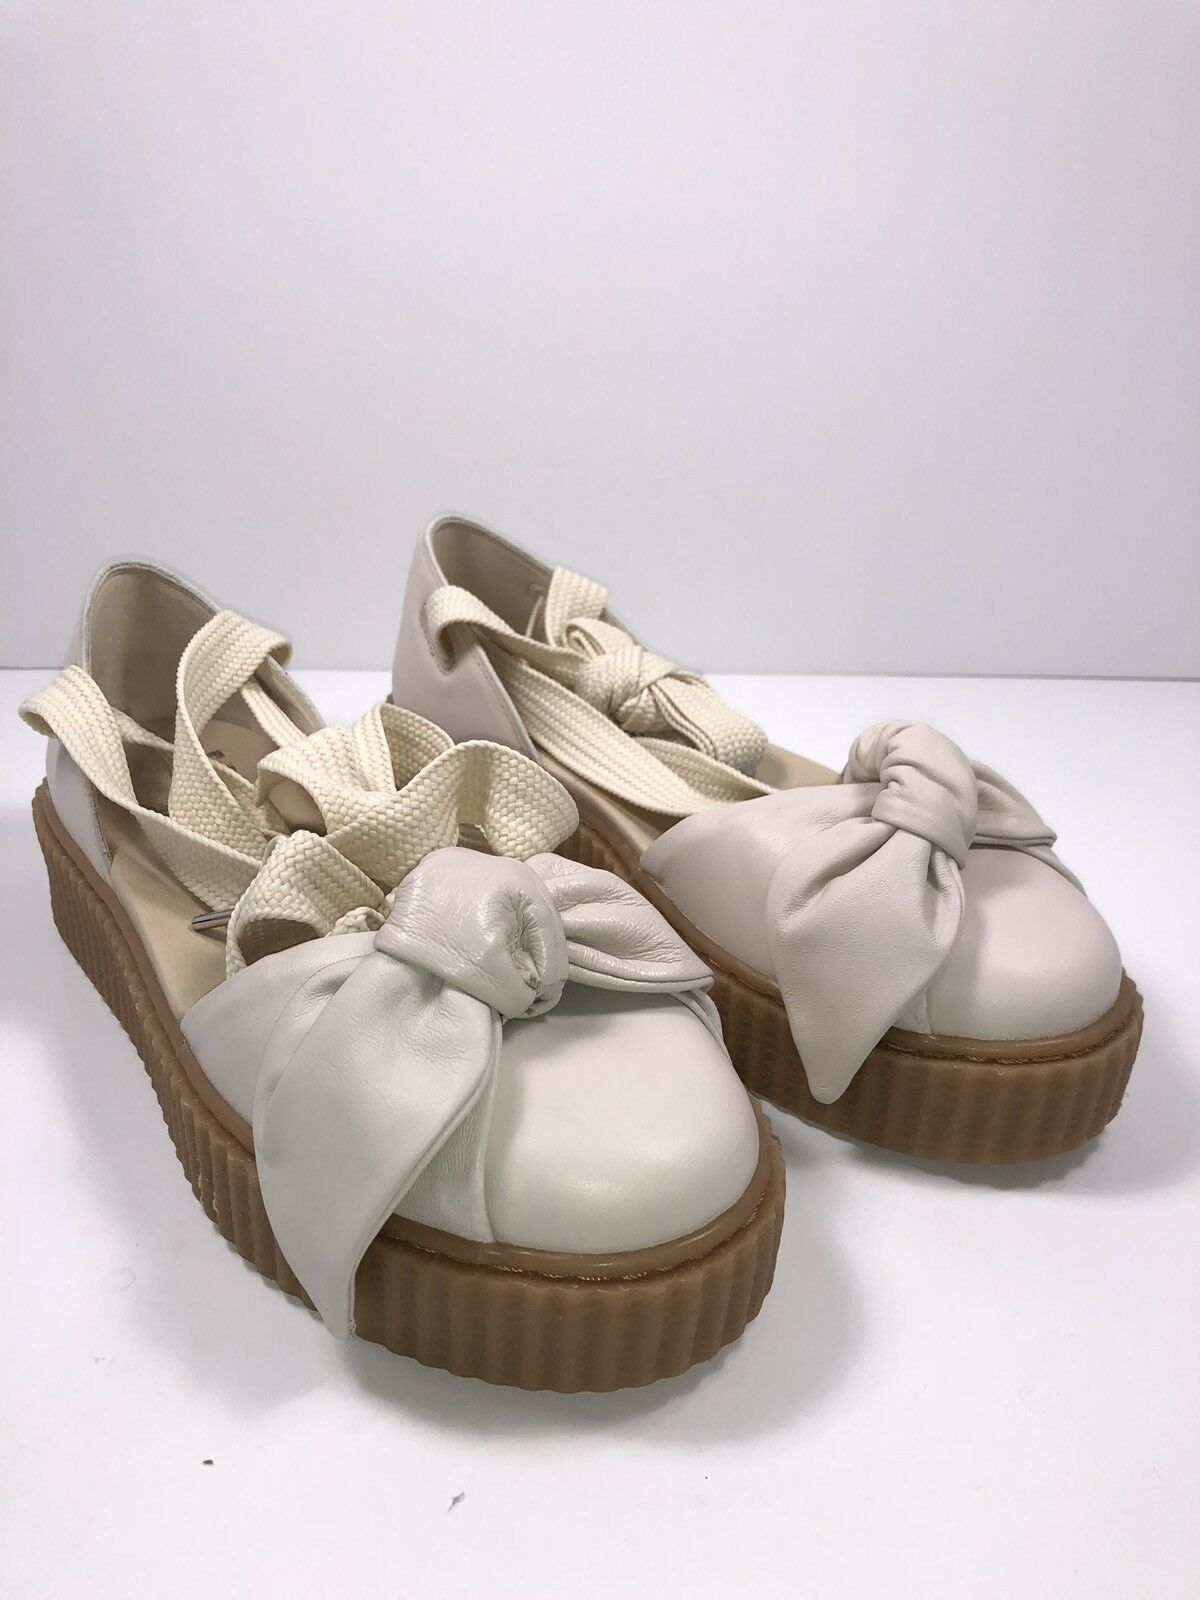 femmes PUMA  FENTY  RIHANNA CREEPER BOW baskets TIE UP SANDALS TAN SZ 9